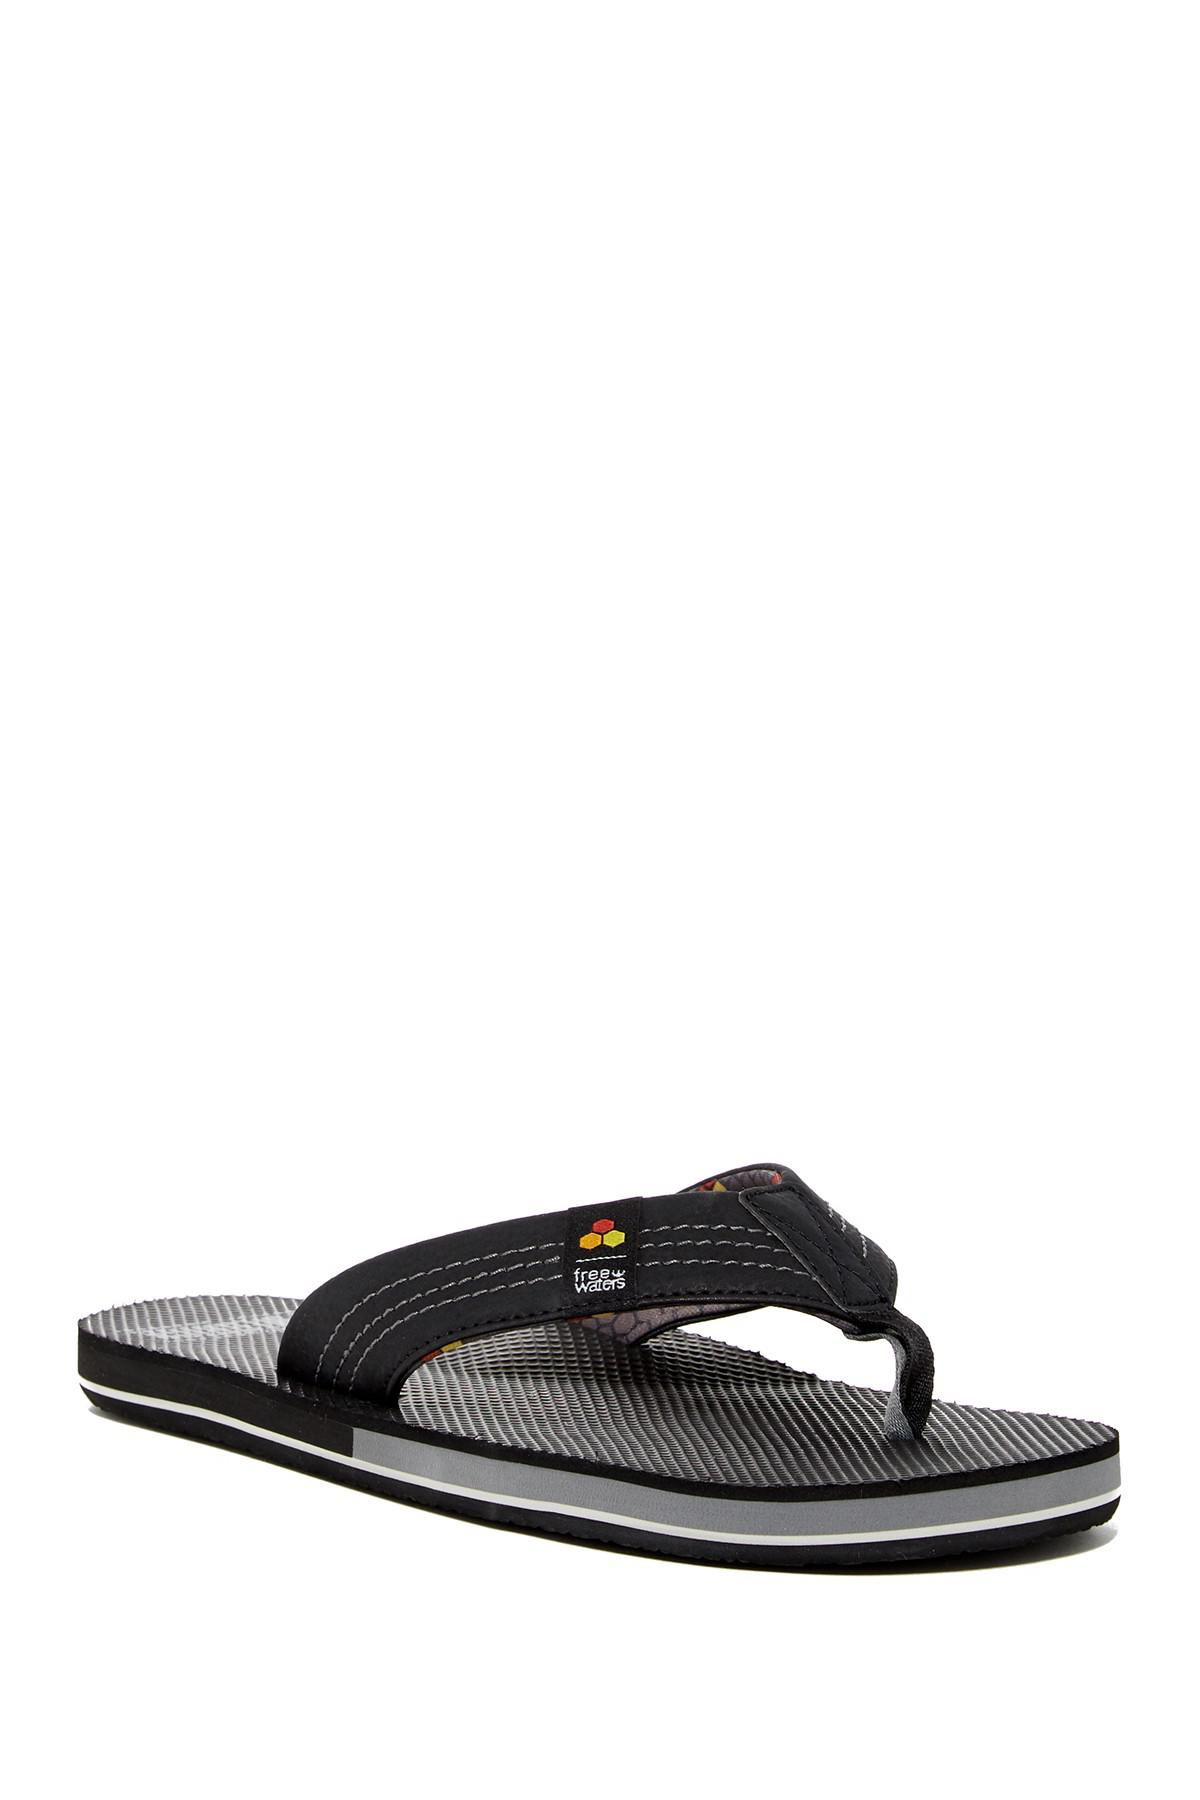 e3596030281 Lyst - Freewaters Dude Flip Flop in Black for Men